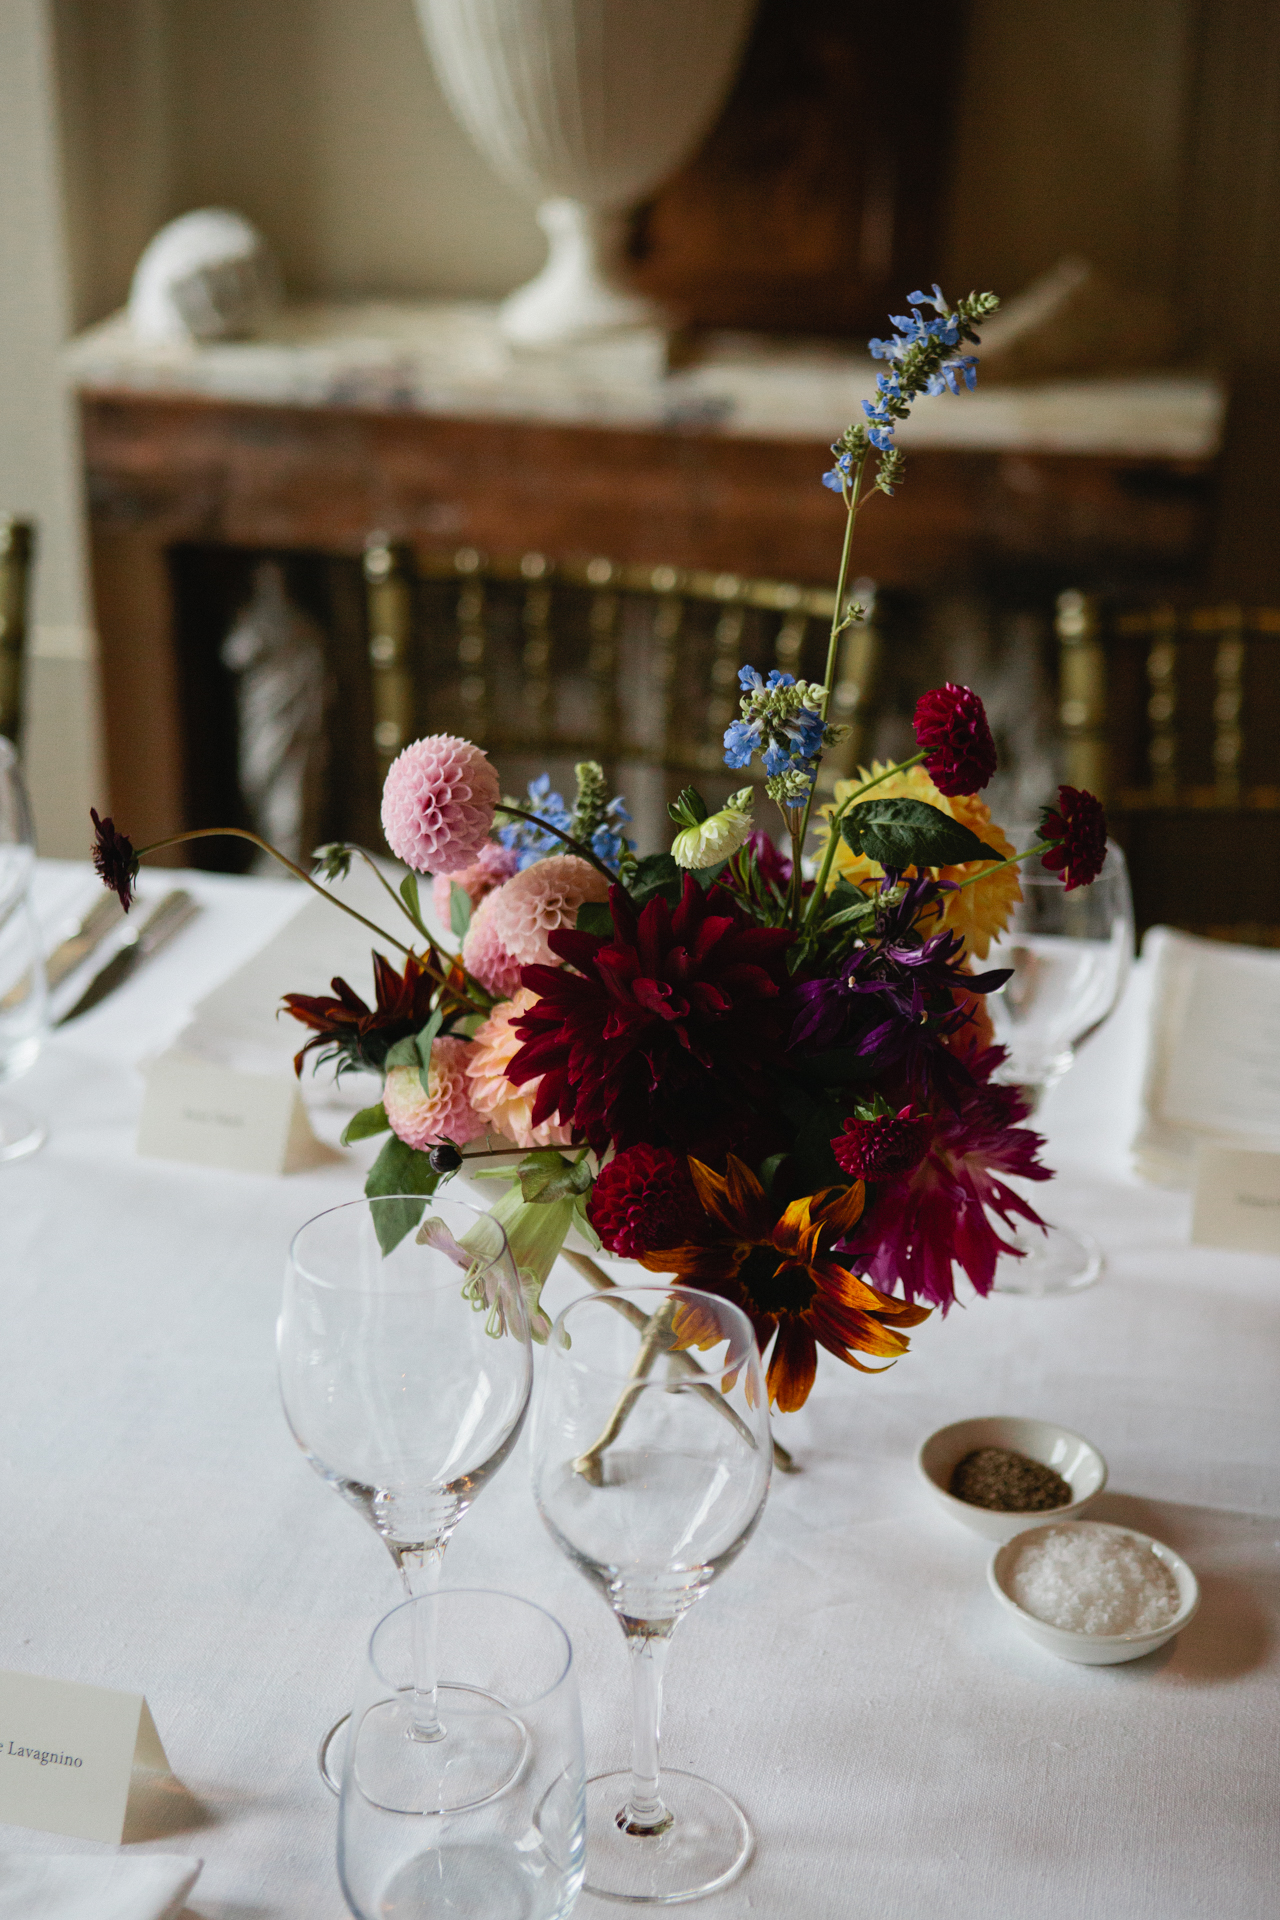 An autumnal flower display on a table at Aynhoe Park